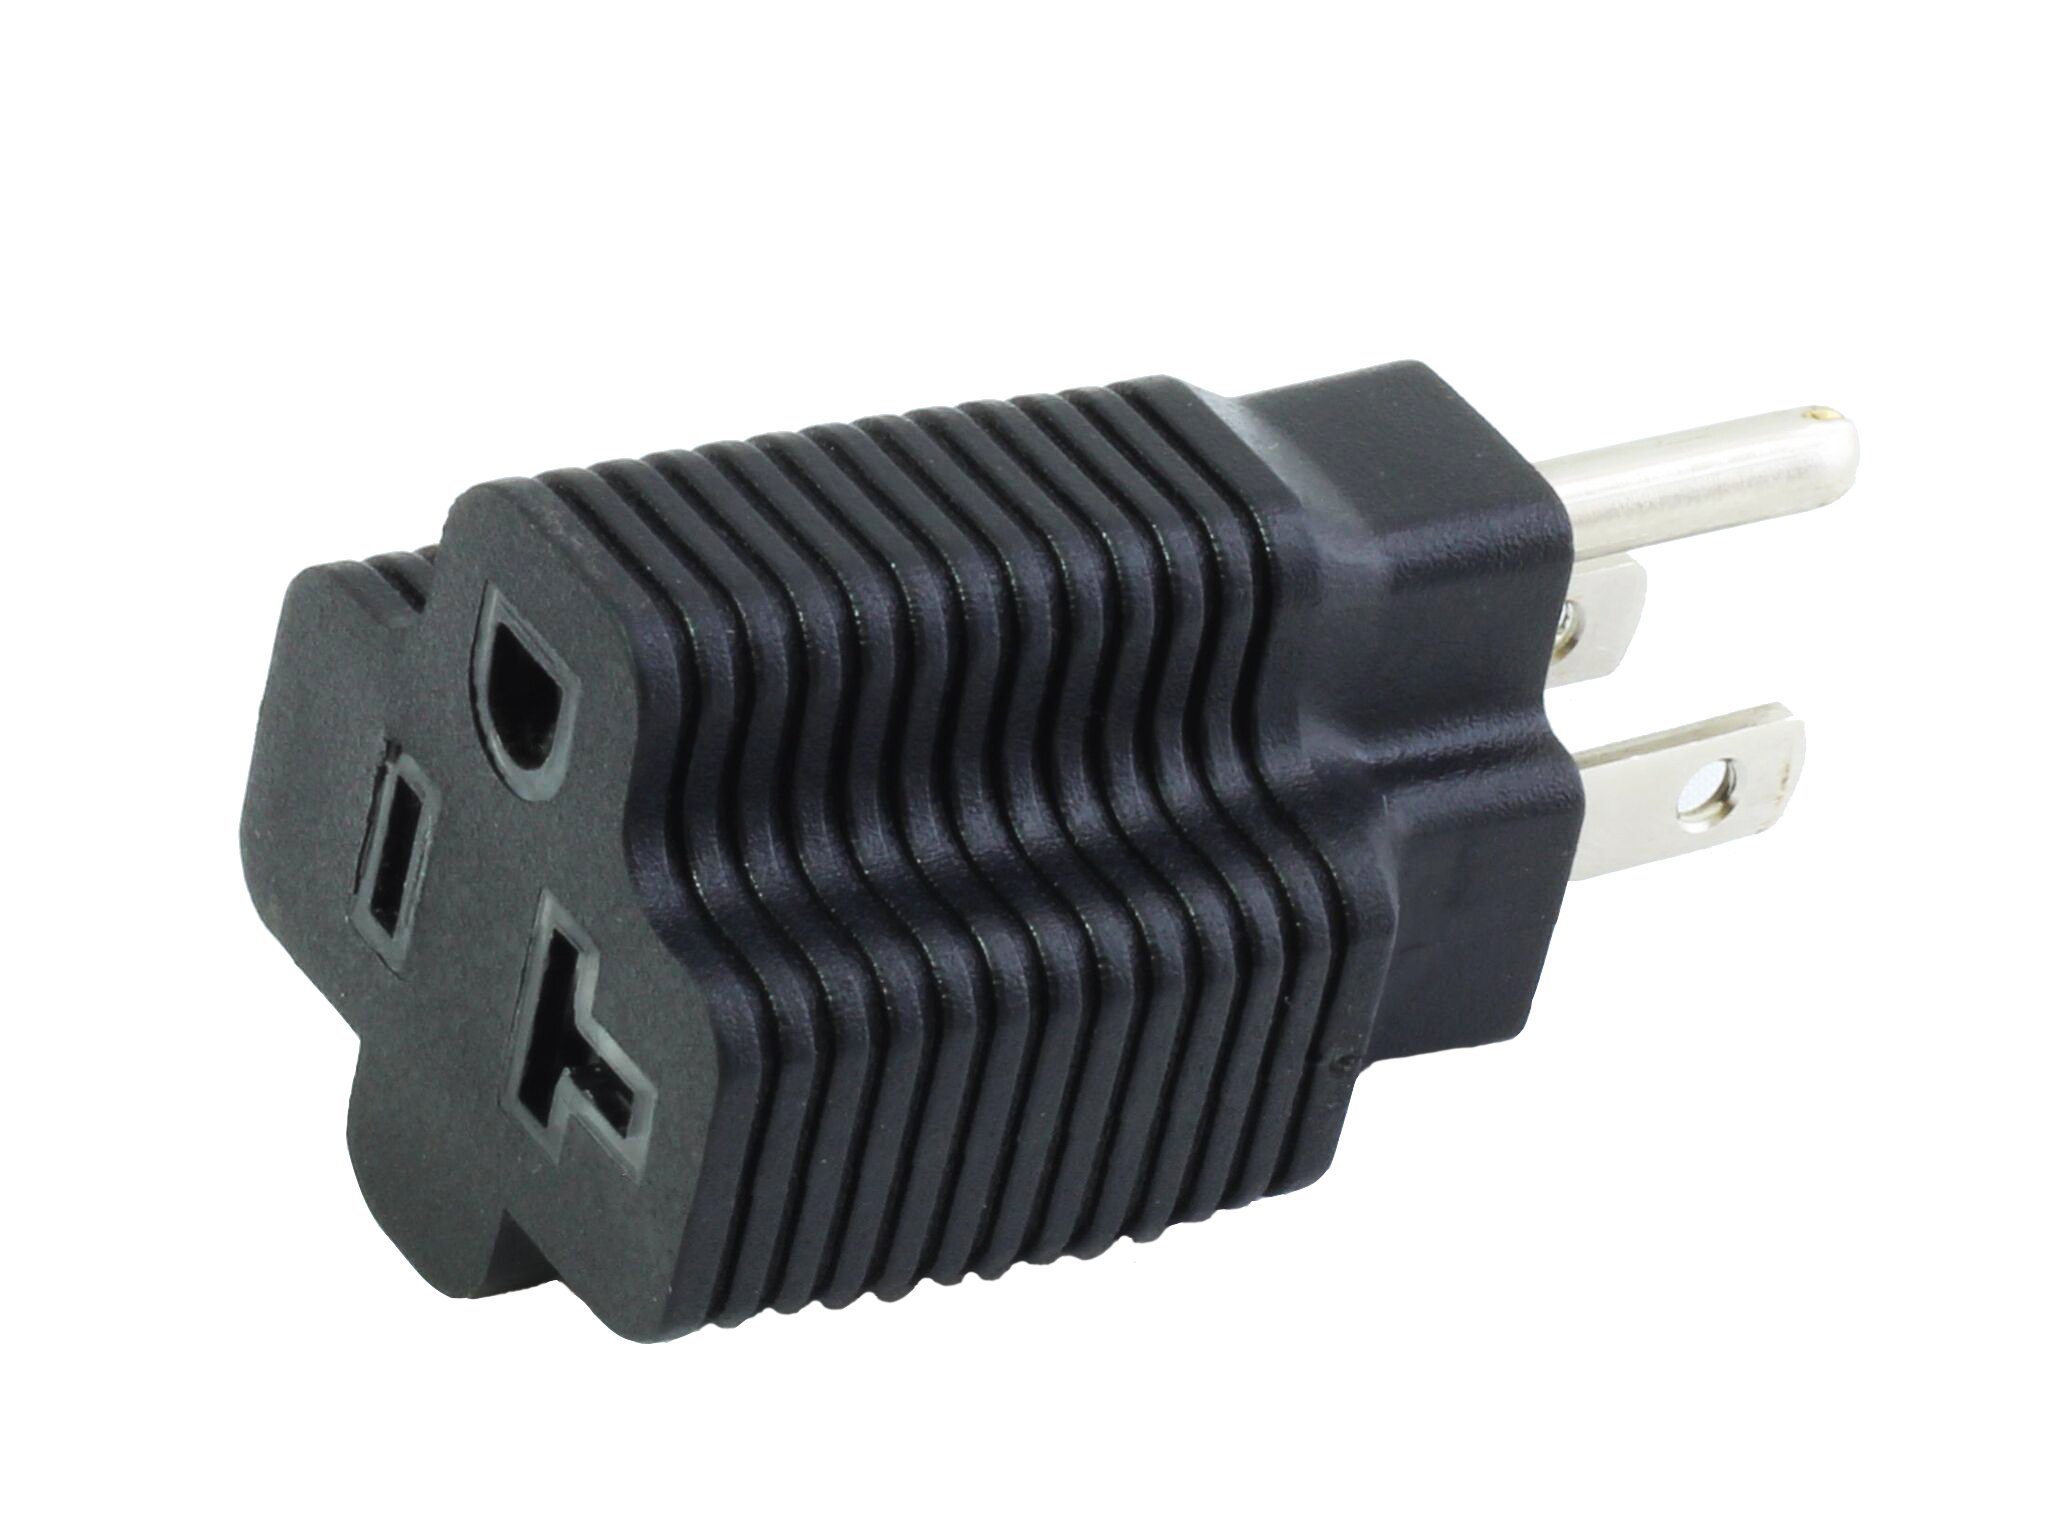 AC WORKS 3PK 15 Amp Household Male Plug to 20 Amp T-Blade Female Adapter